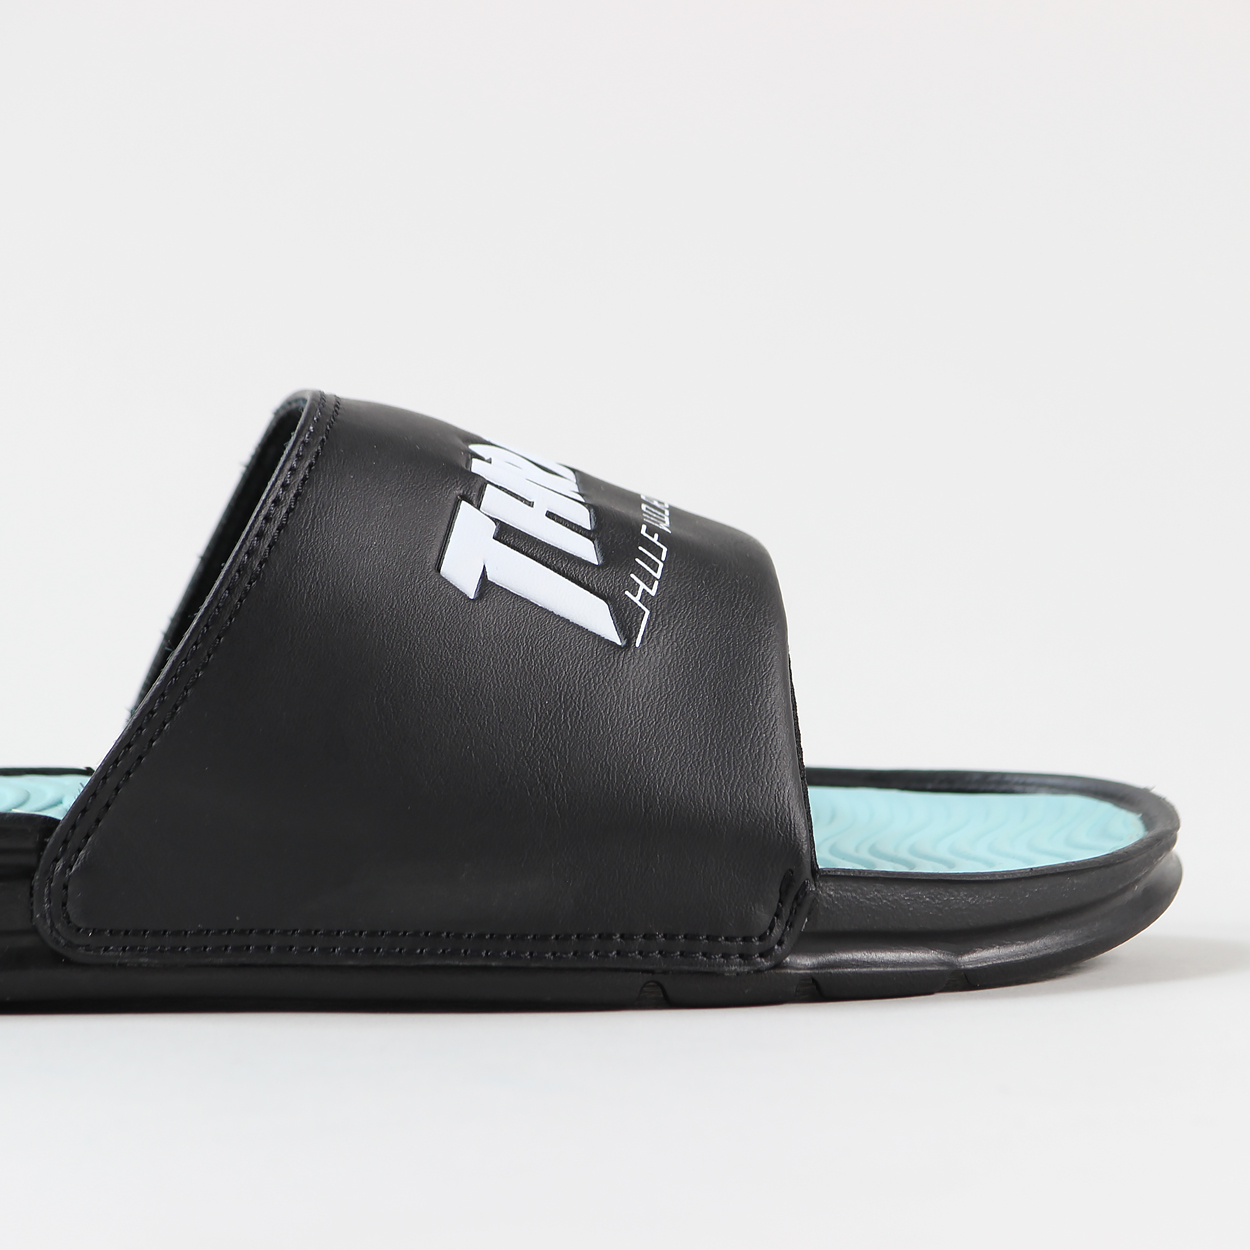 32f8205795a1 From the latest Huf Worldwide and Thrasher Worldwide we have these awesome  slides...or sandals as we call the up north. Serious ace style!